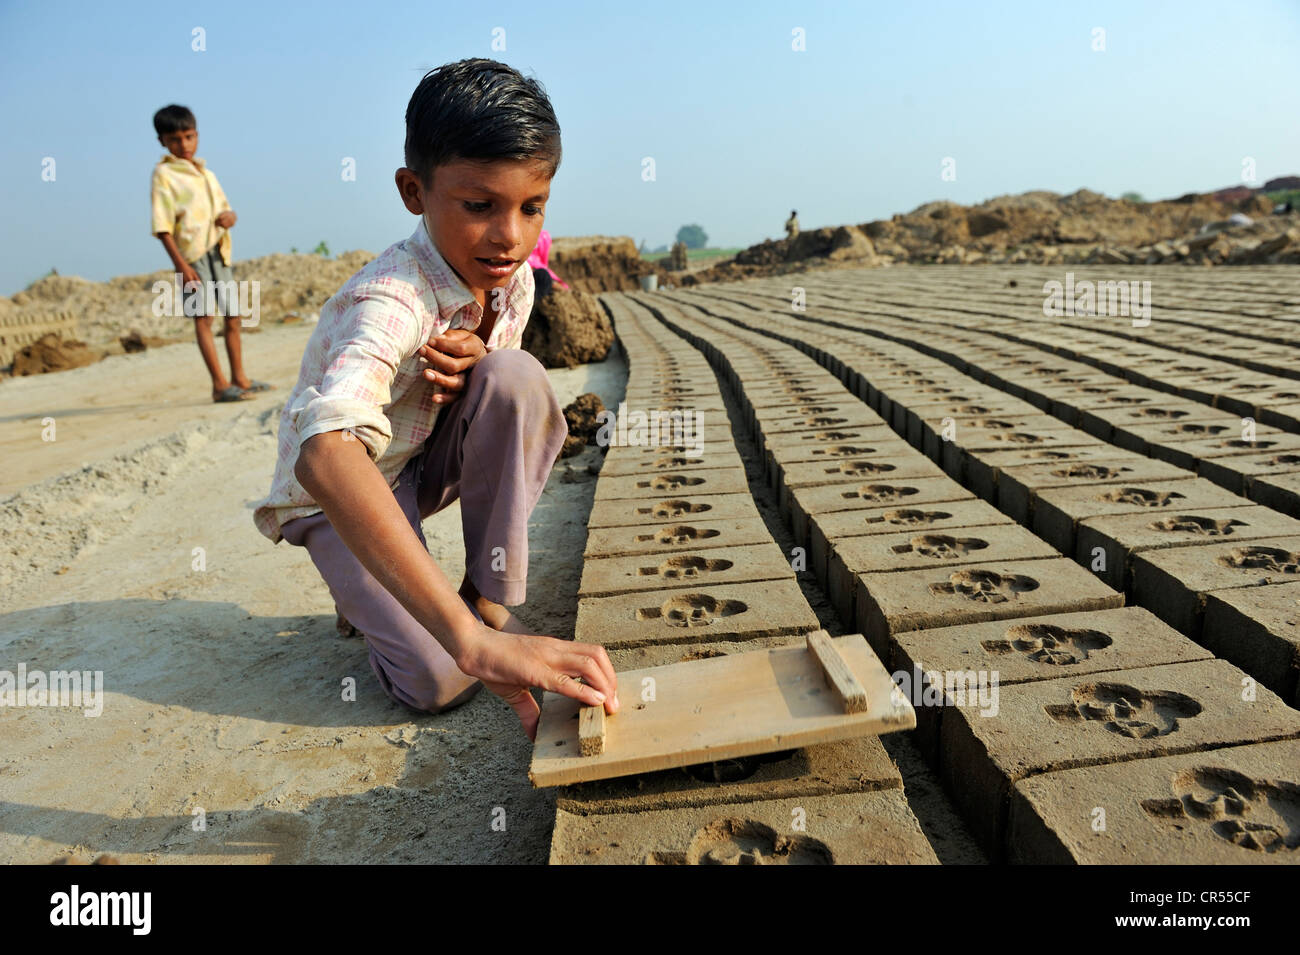 Child labour, 8-year-old boy working in a brickyard, member of the Christian minority, which is particularly affected - Stock Image